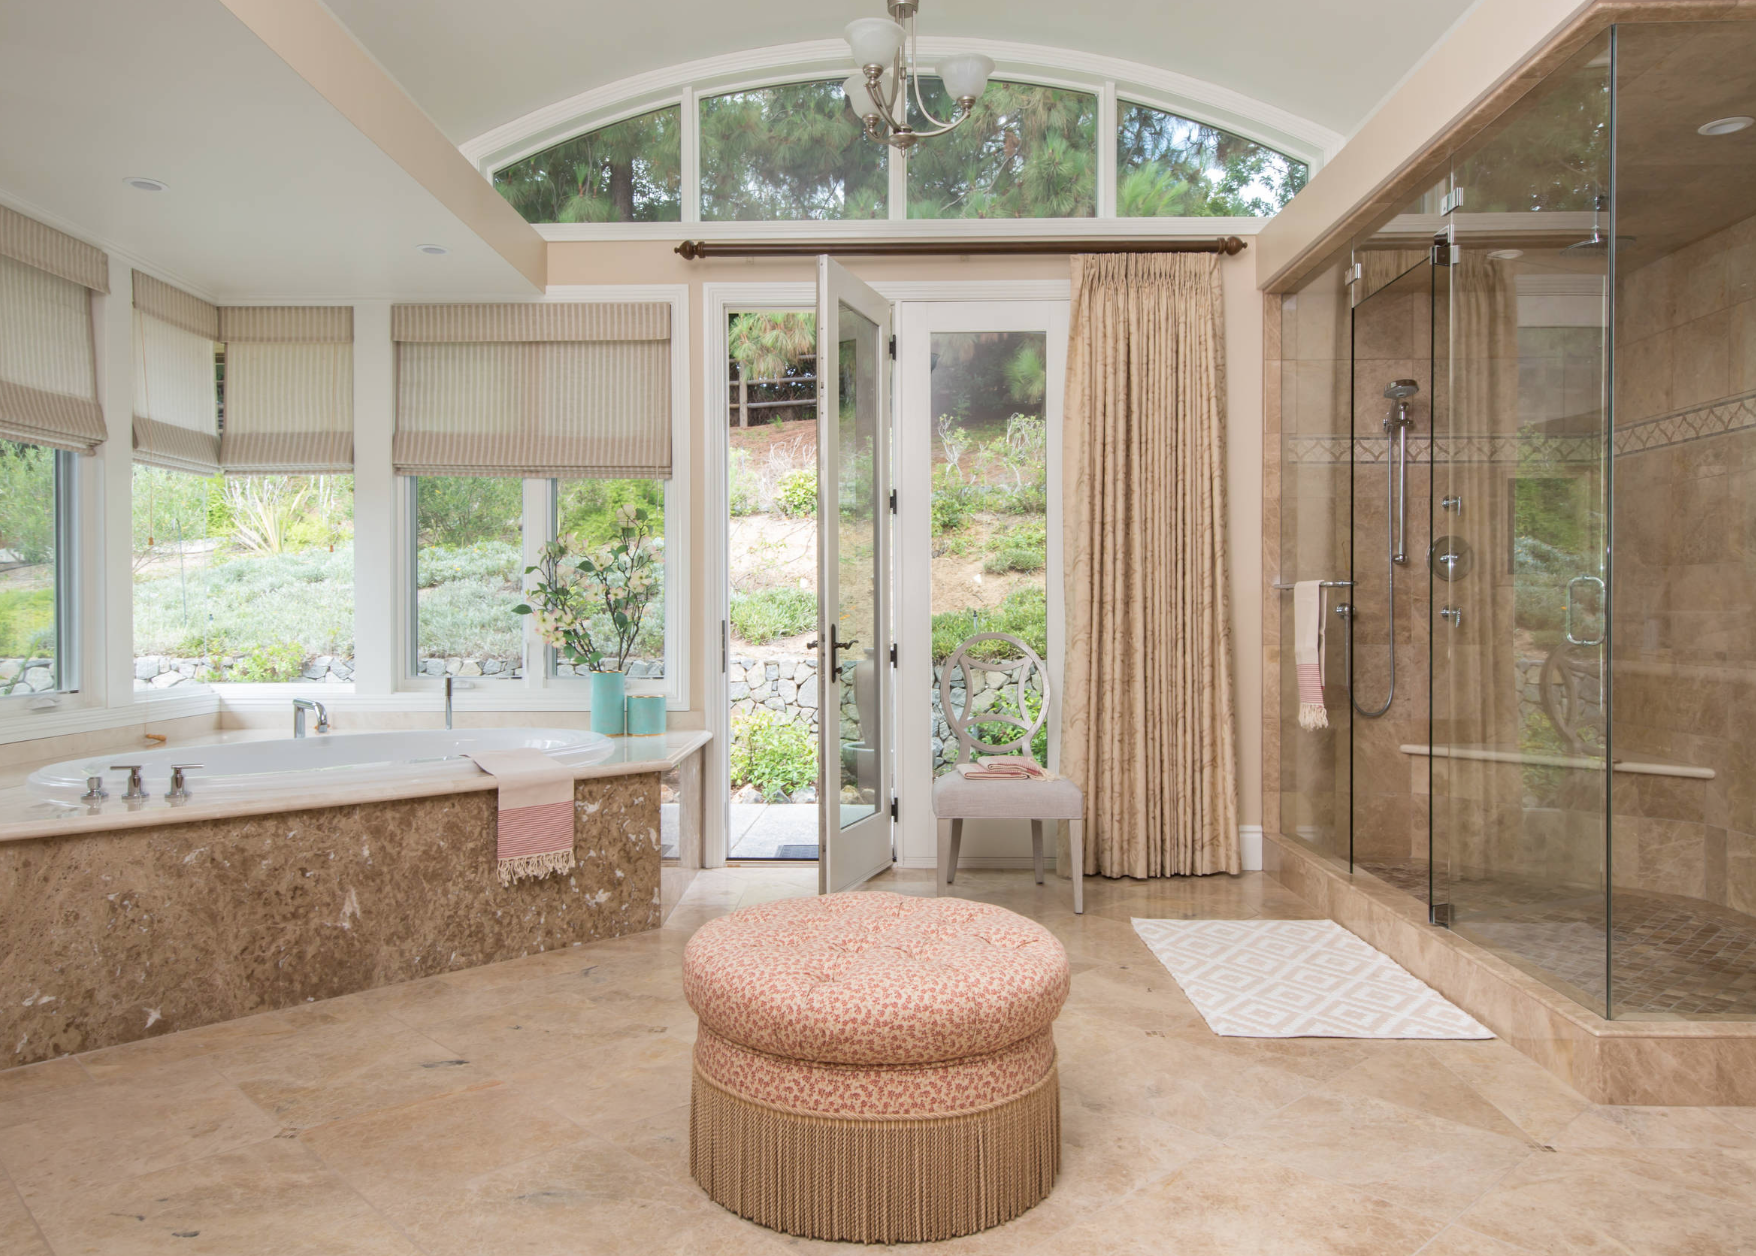 7 Green Building Materials for Designing Sustainable Bathrooms